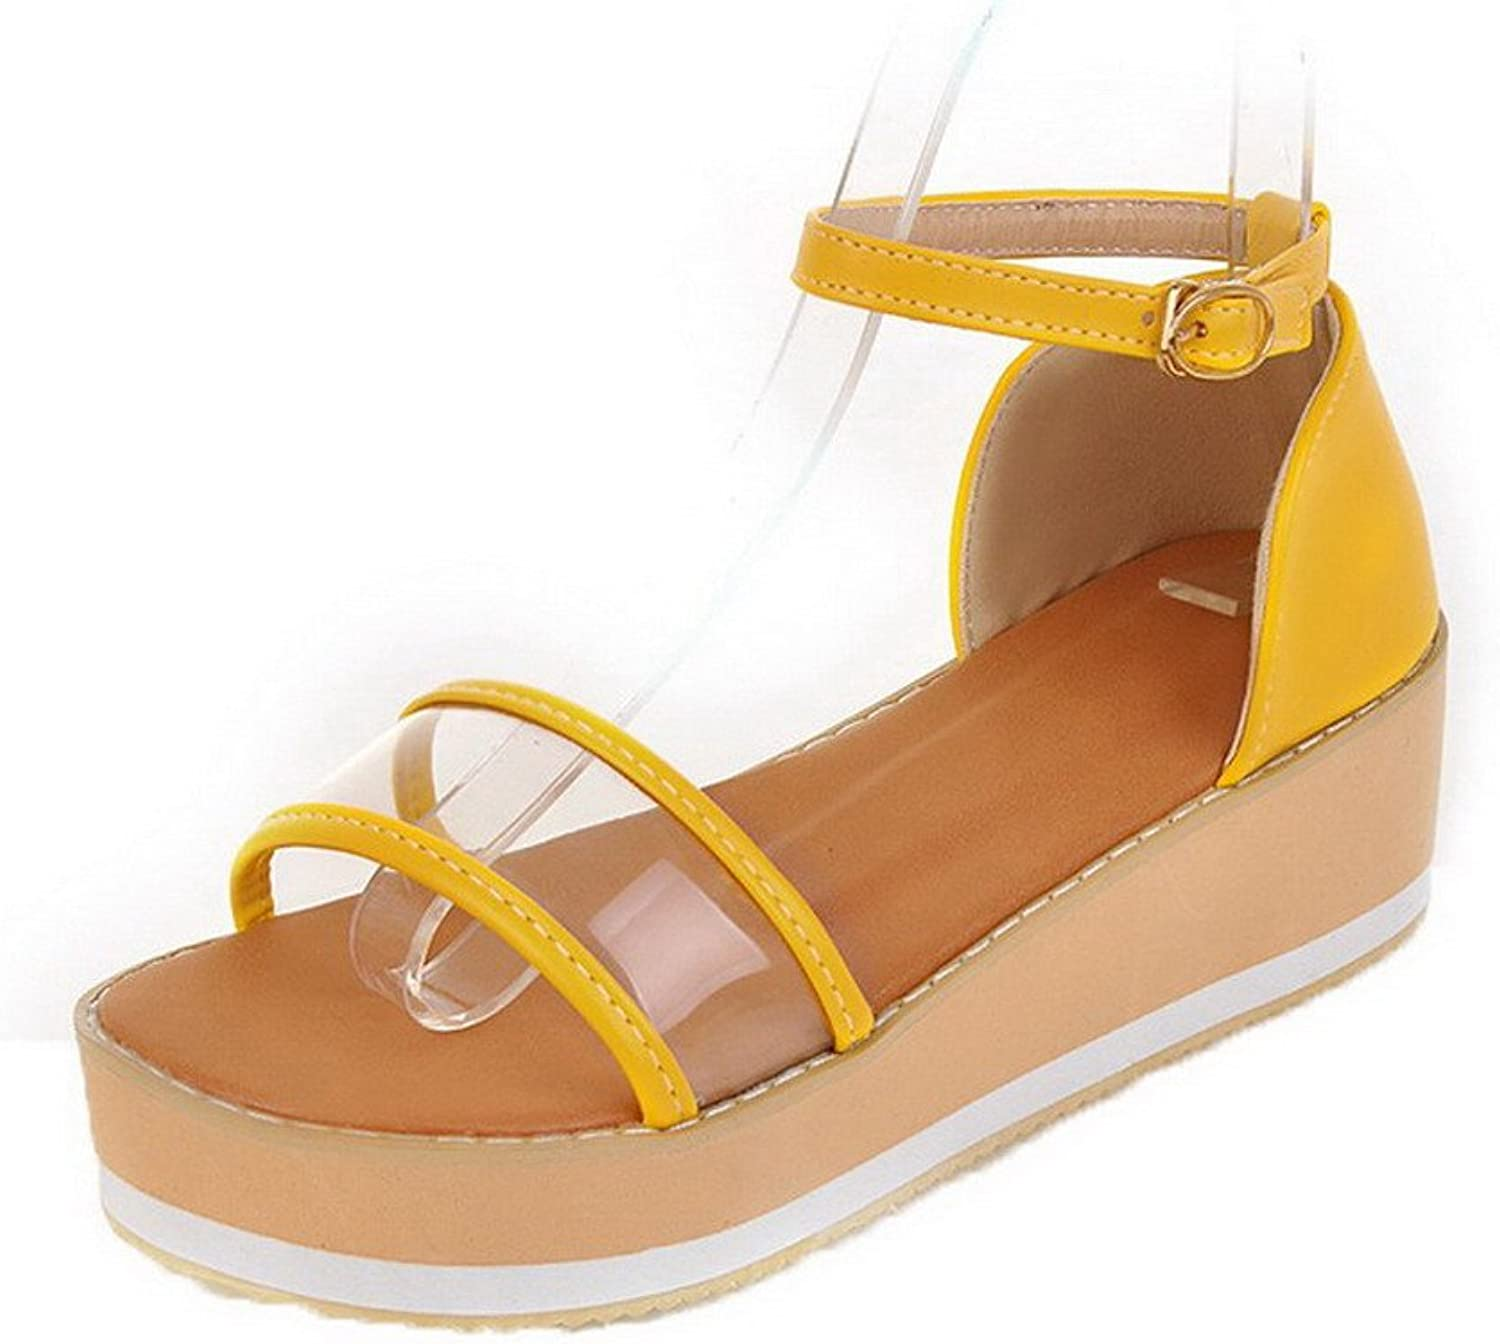 WeenFashion Women's Buckle Open-Toe PU Kitten-Heels Solid Sandals, AMGLX008330